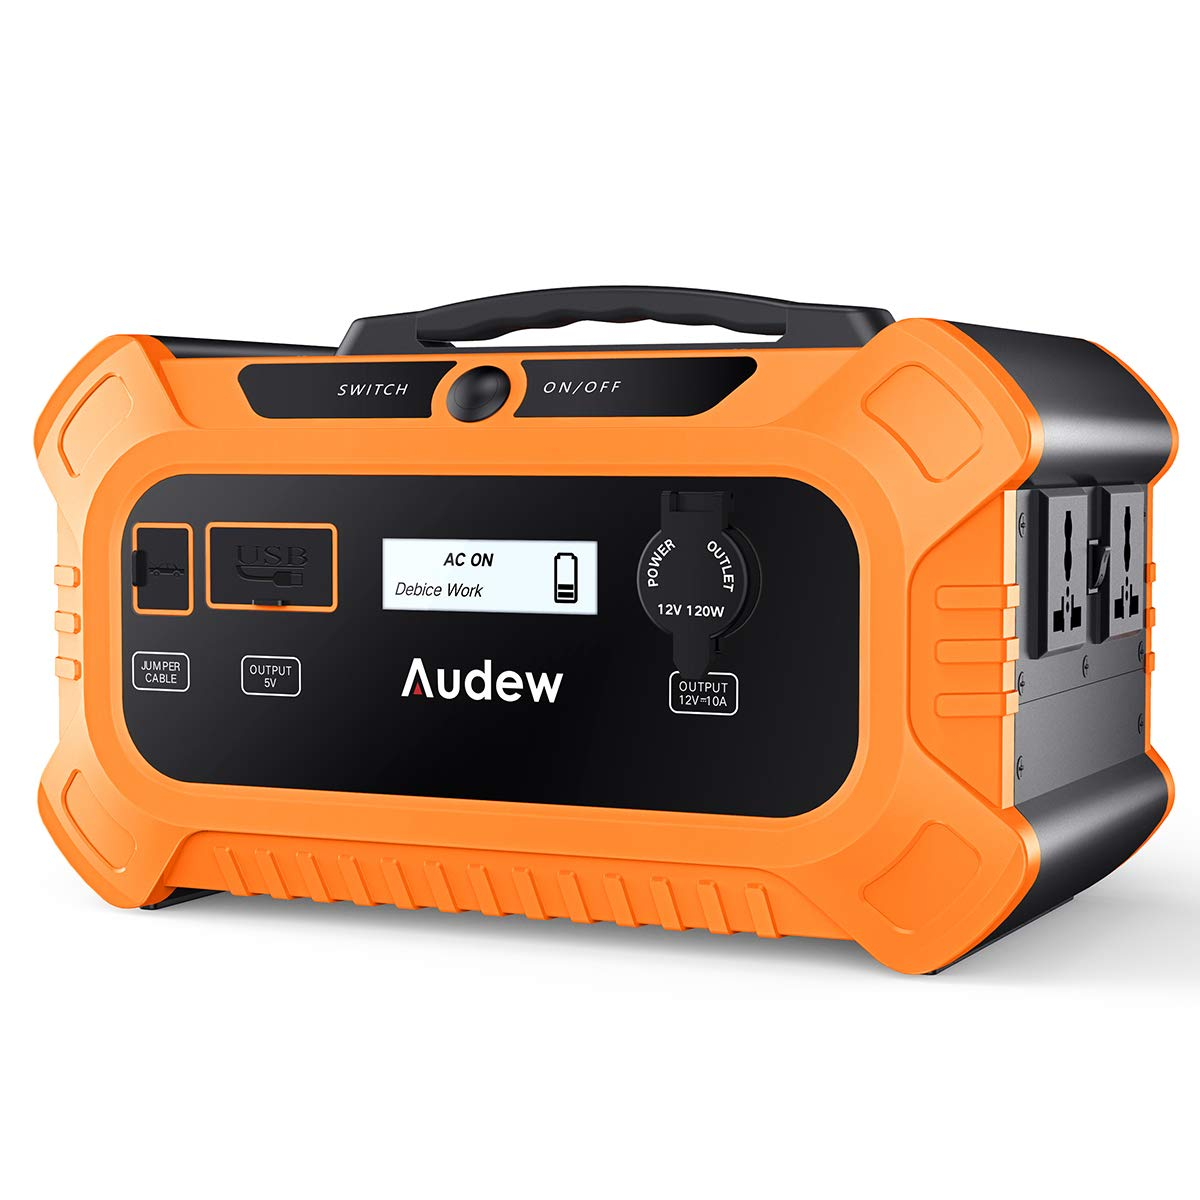 Audew Portable Power Station with LiFePO Battery,500Wh Solar Generator with Car Jump Start Port,Power Supply with 110V 200W Max 250W AC Outlet for Outdoors Camping Emergency 500Wh